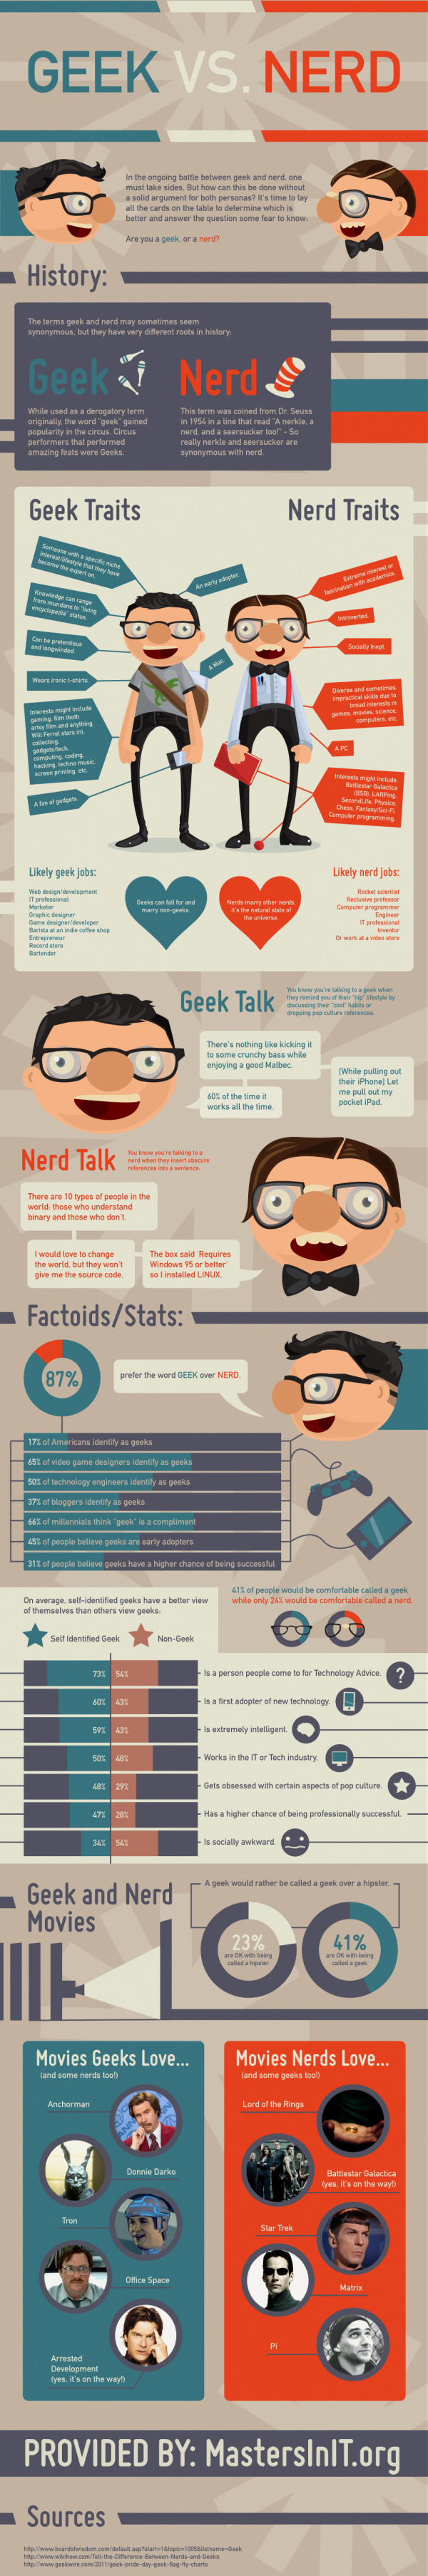 Geek vs. Nerd: Which Are You? infographic